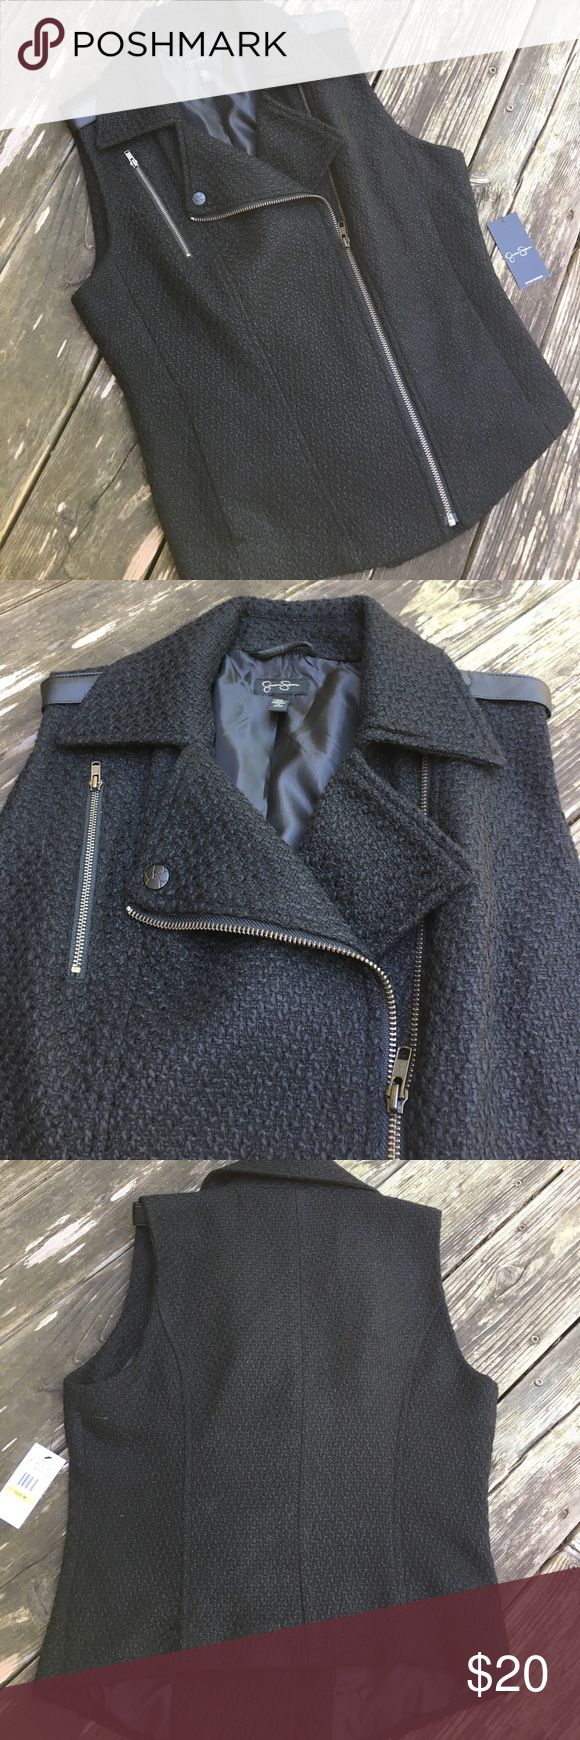 """Jessica Simpson """"Jamie"""" Tweed Moto Vest Cool tweed vest with a motorcycle-jacket look, works great zipped or unzipped with basically anything. NWT! Jessica Simpson Jackets & Coats Vests"""